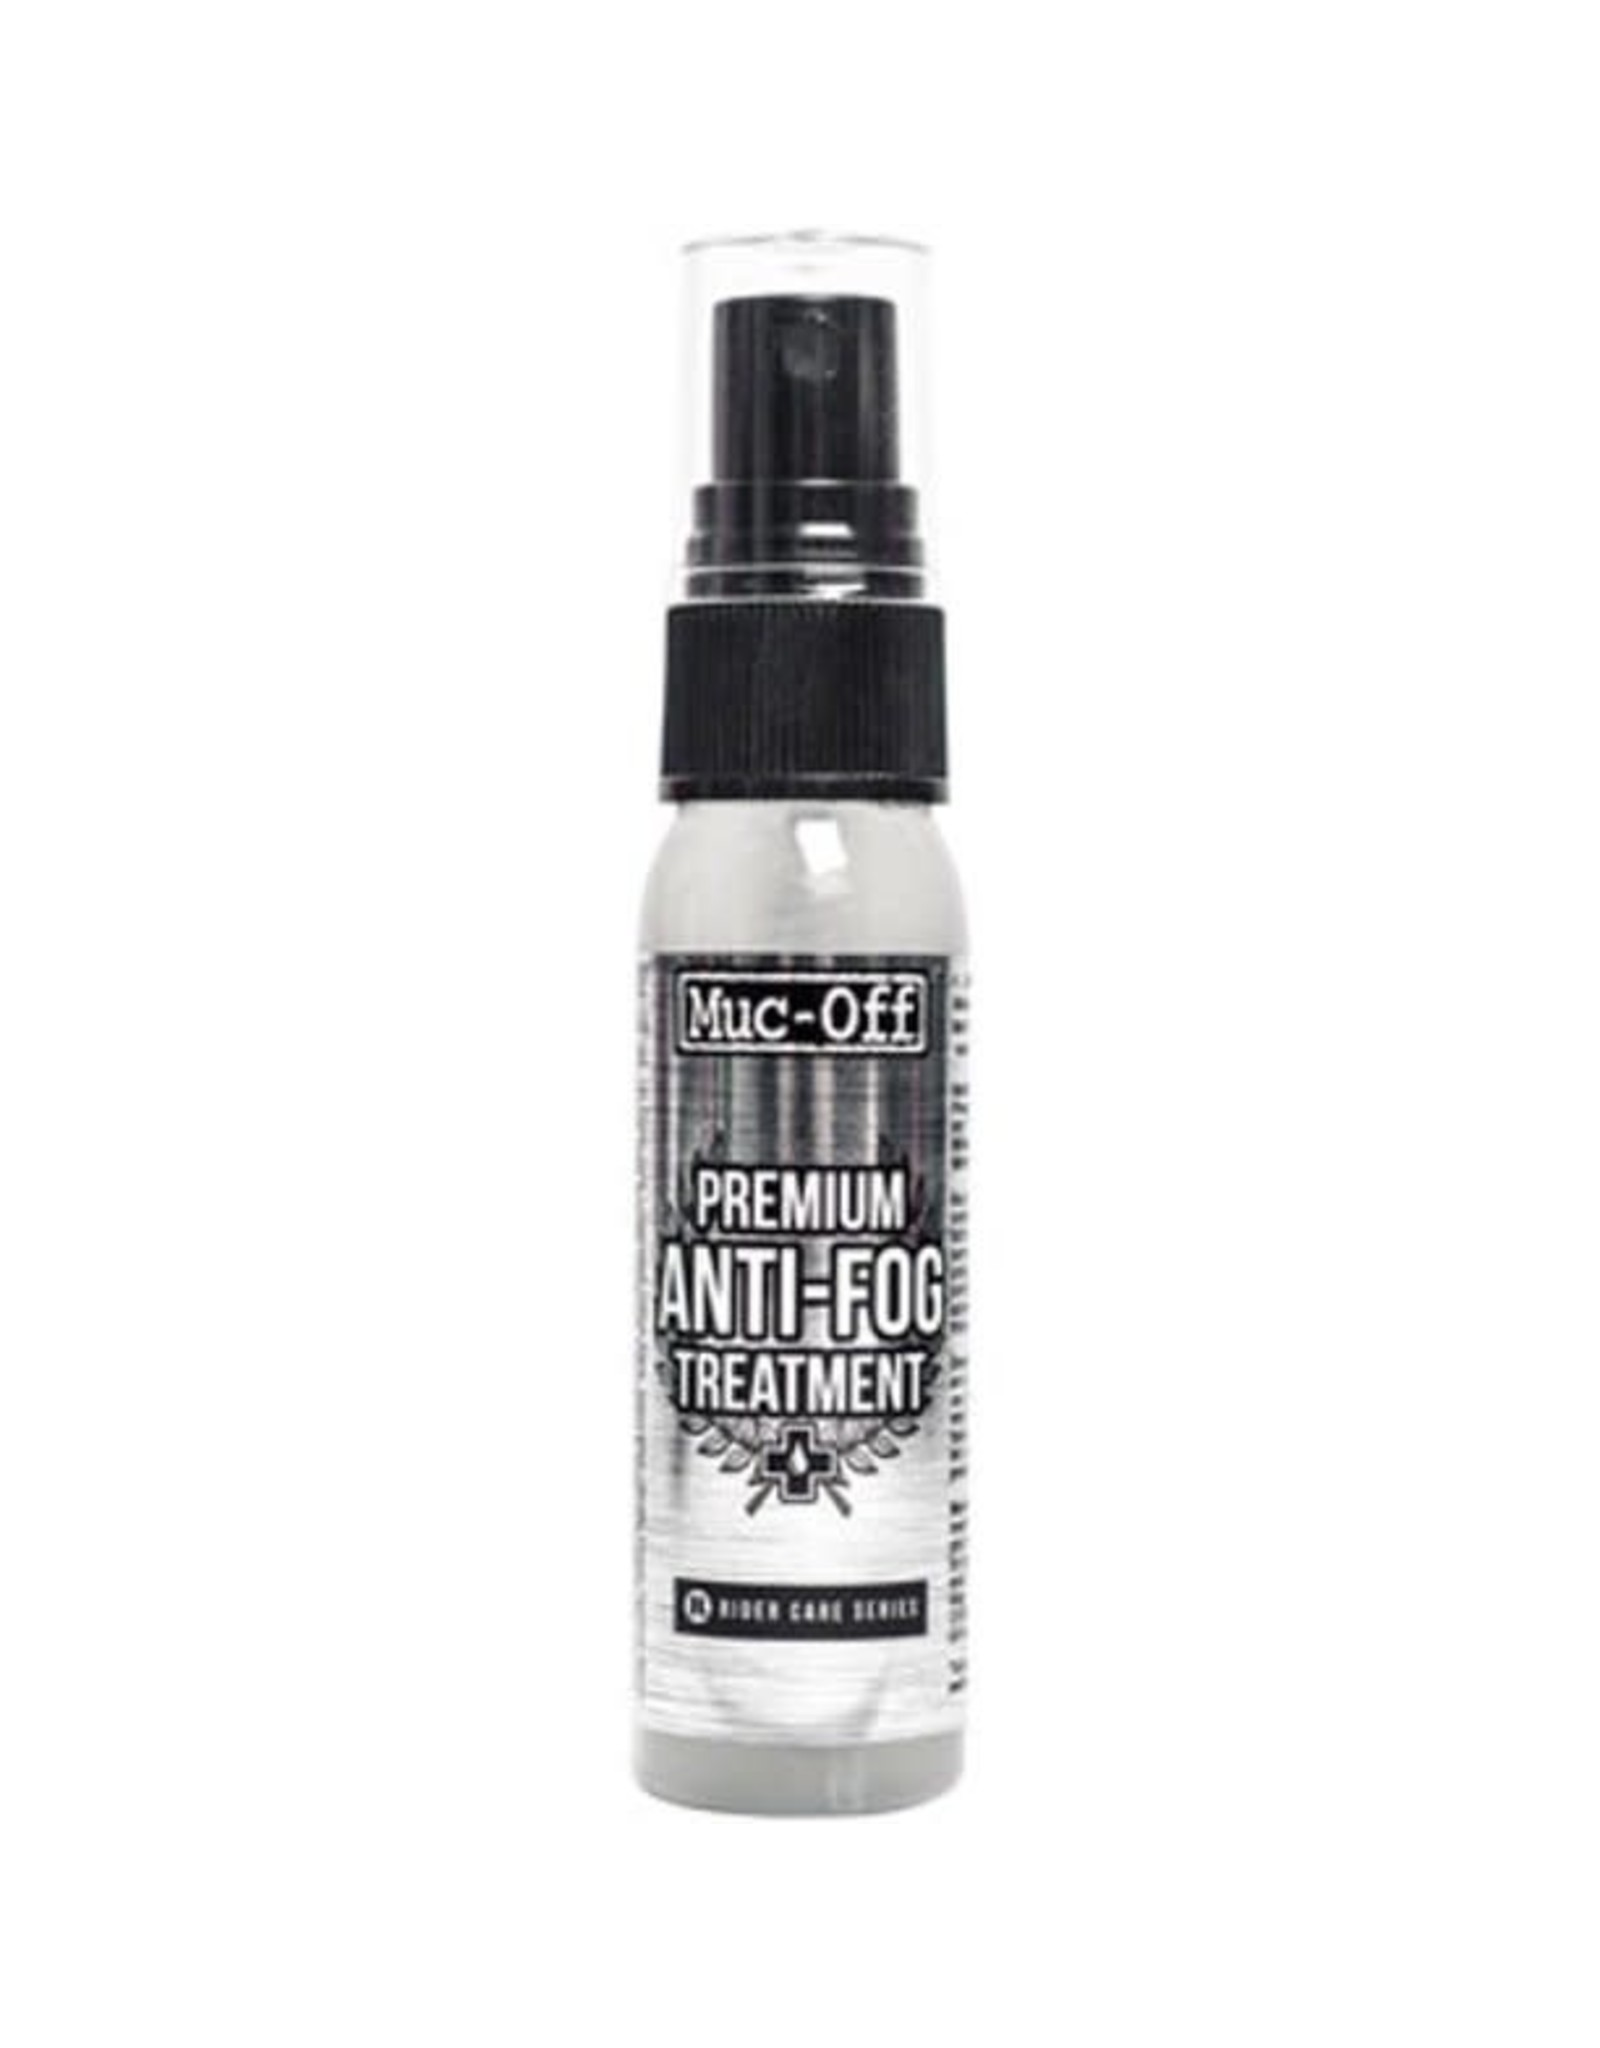 Muc-Off Muc-Off Anti Fog Treatment: 32ml Spray